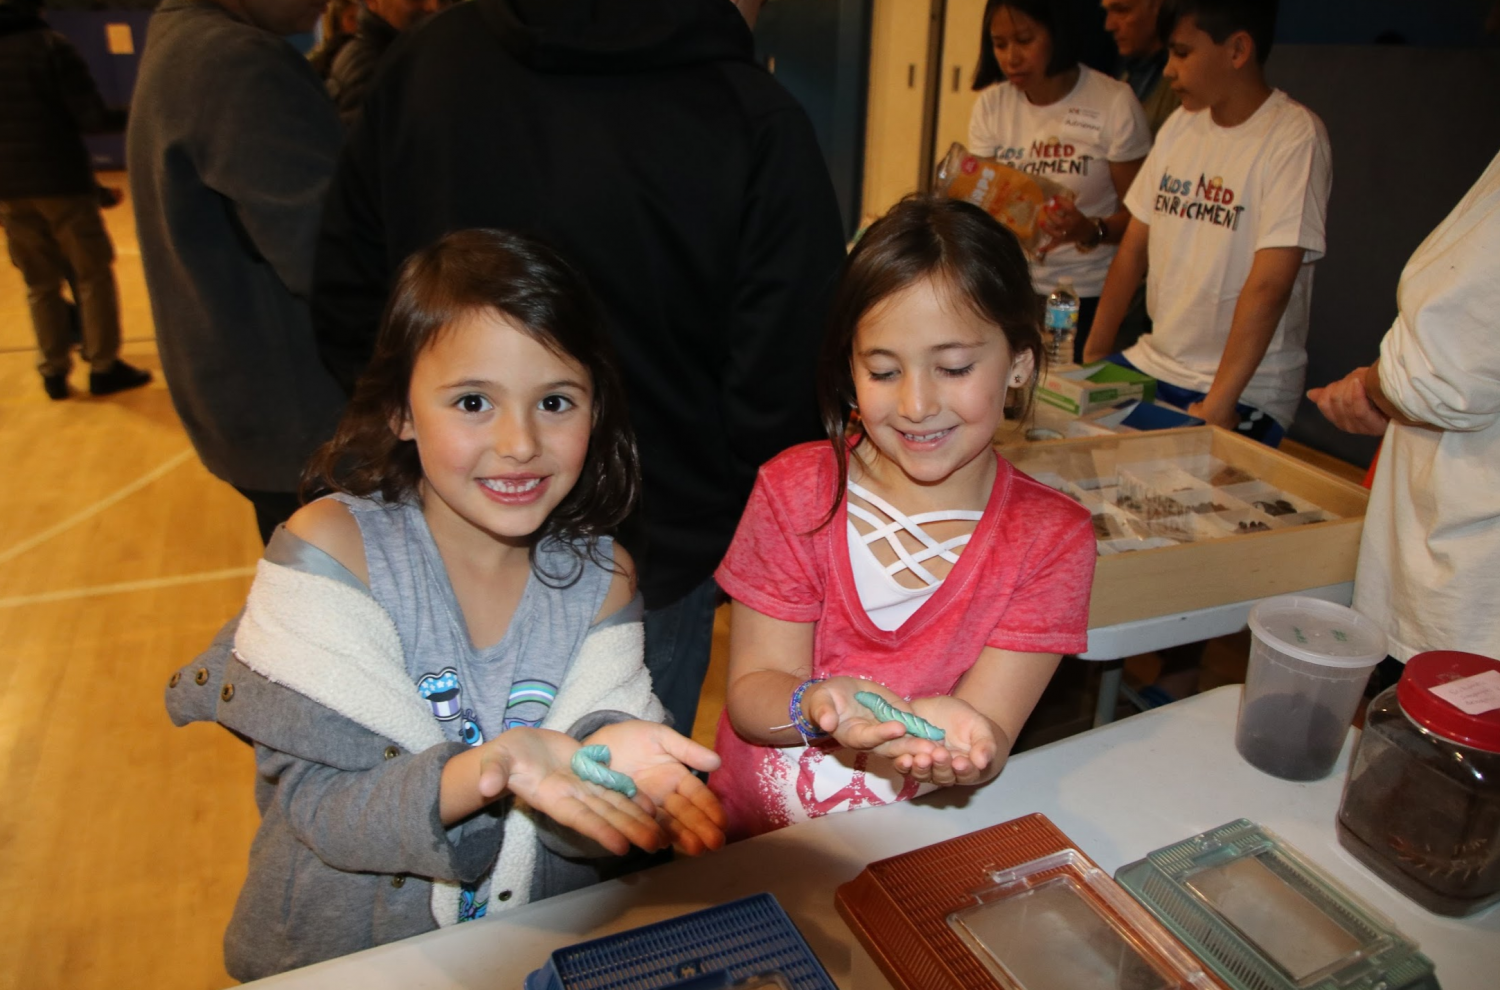 Manorhaven elementary school students learned about different types of insects and hold live caterpillars at the Insects and Arachnids station. Louis Sorkin from the American Museum of Natural History showed children the unique anatomy and adaptations of different species of insects.